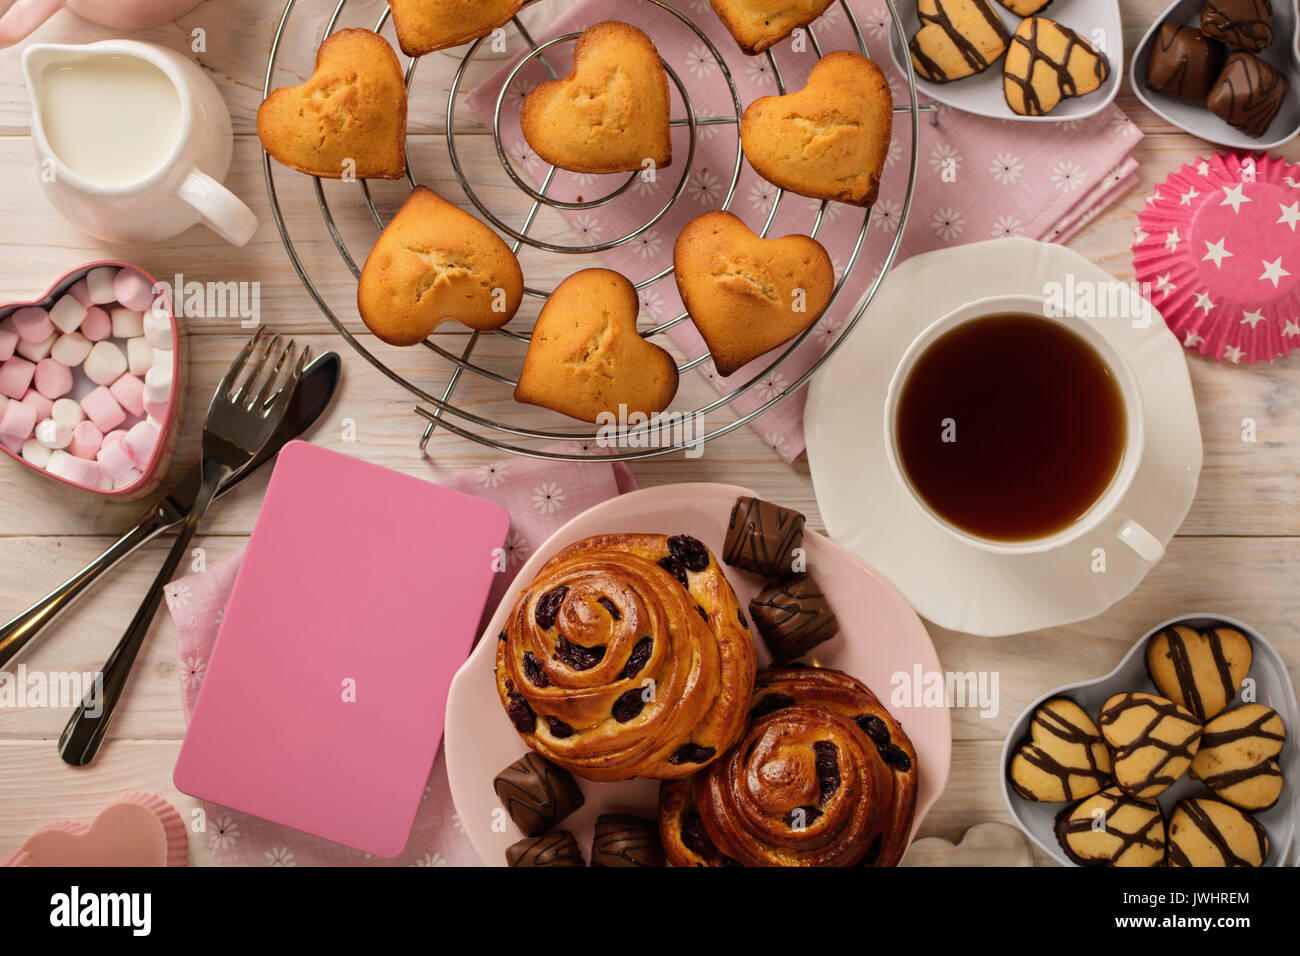 Flat lay cakes and cookies, muffins and rolls, biscuits and sweets, tea and coffee with marshmallow. Top view. - Stock Image